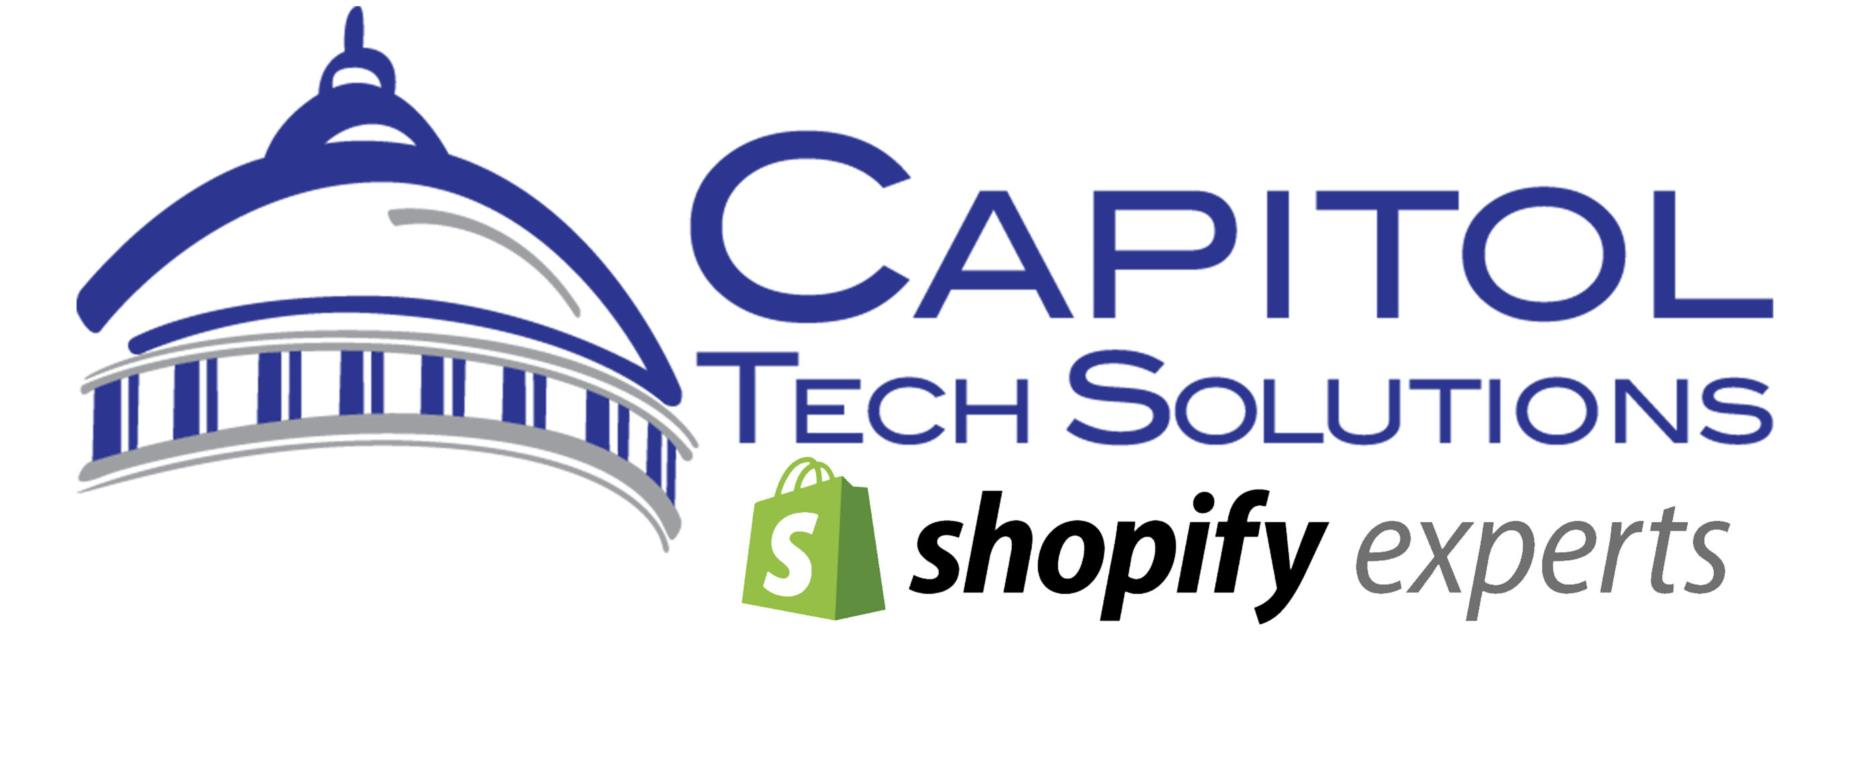 CTS is excited to become Shopify's Only Certified Partner and Expert Ecommerce Services Provider in Sacramento, CA!